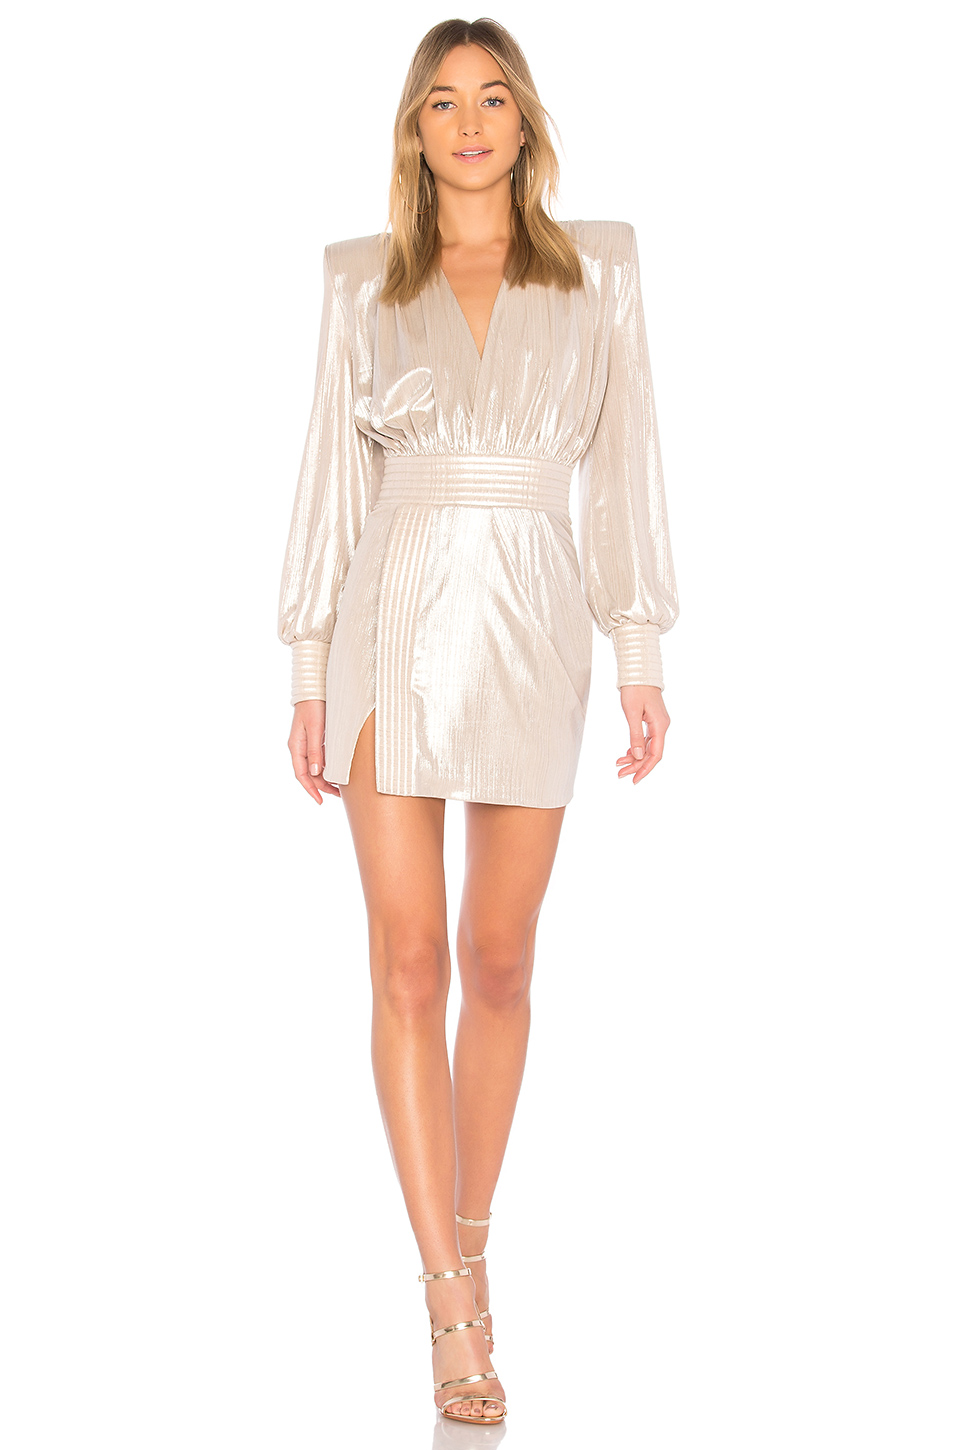 Zhivago Ready Metallic Mini Dress in Pearl